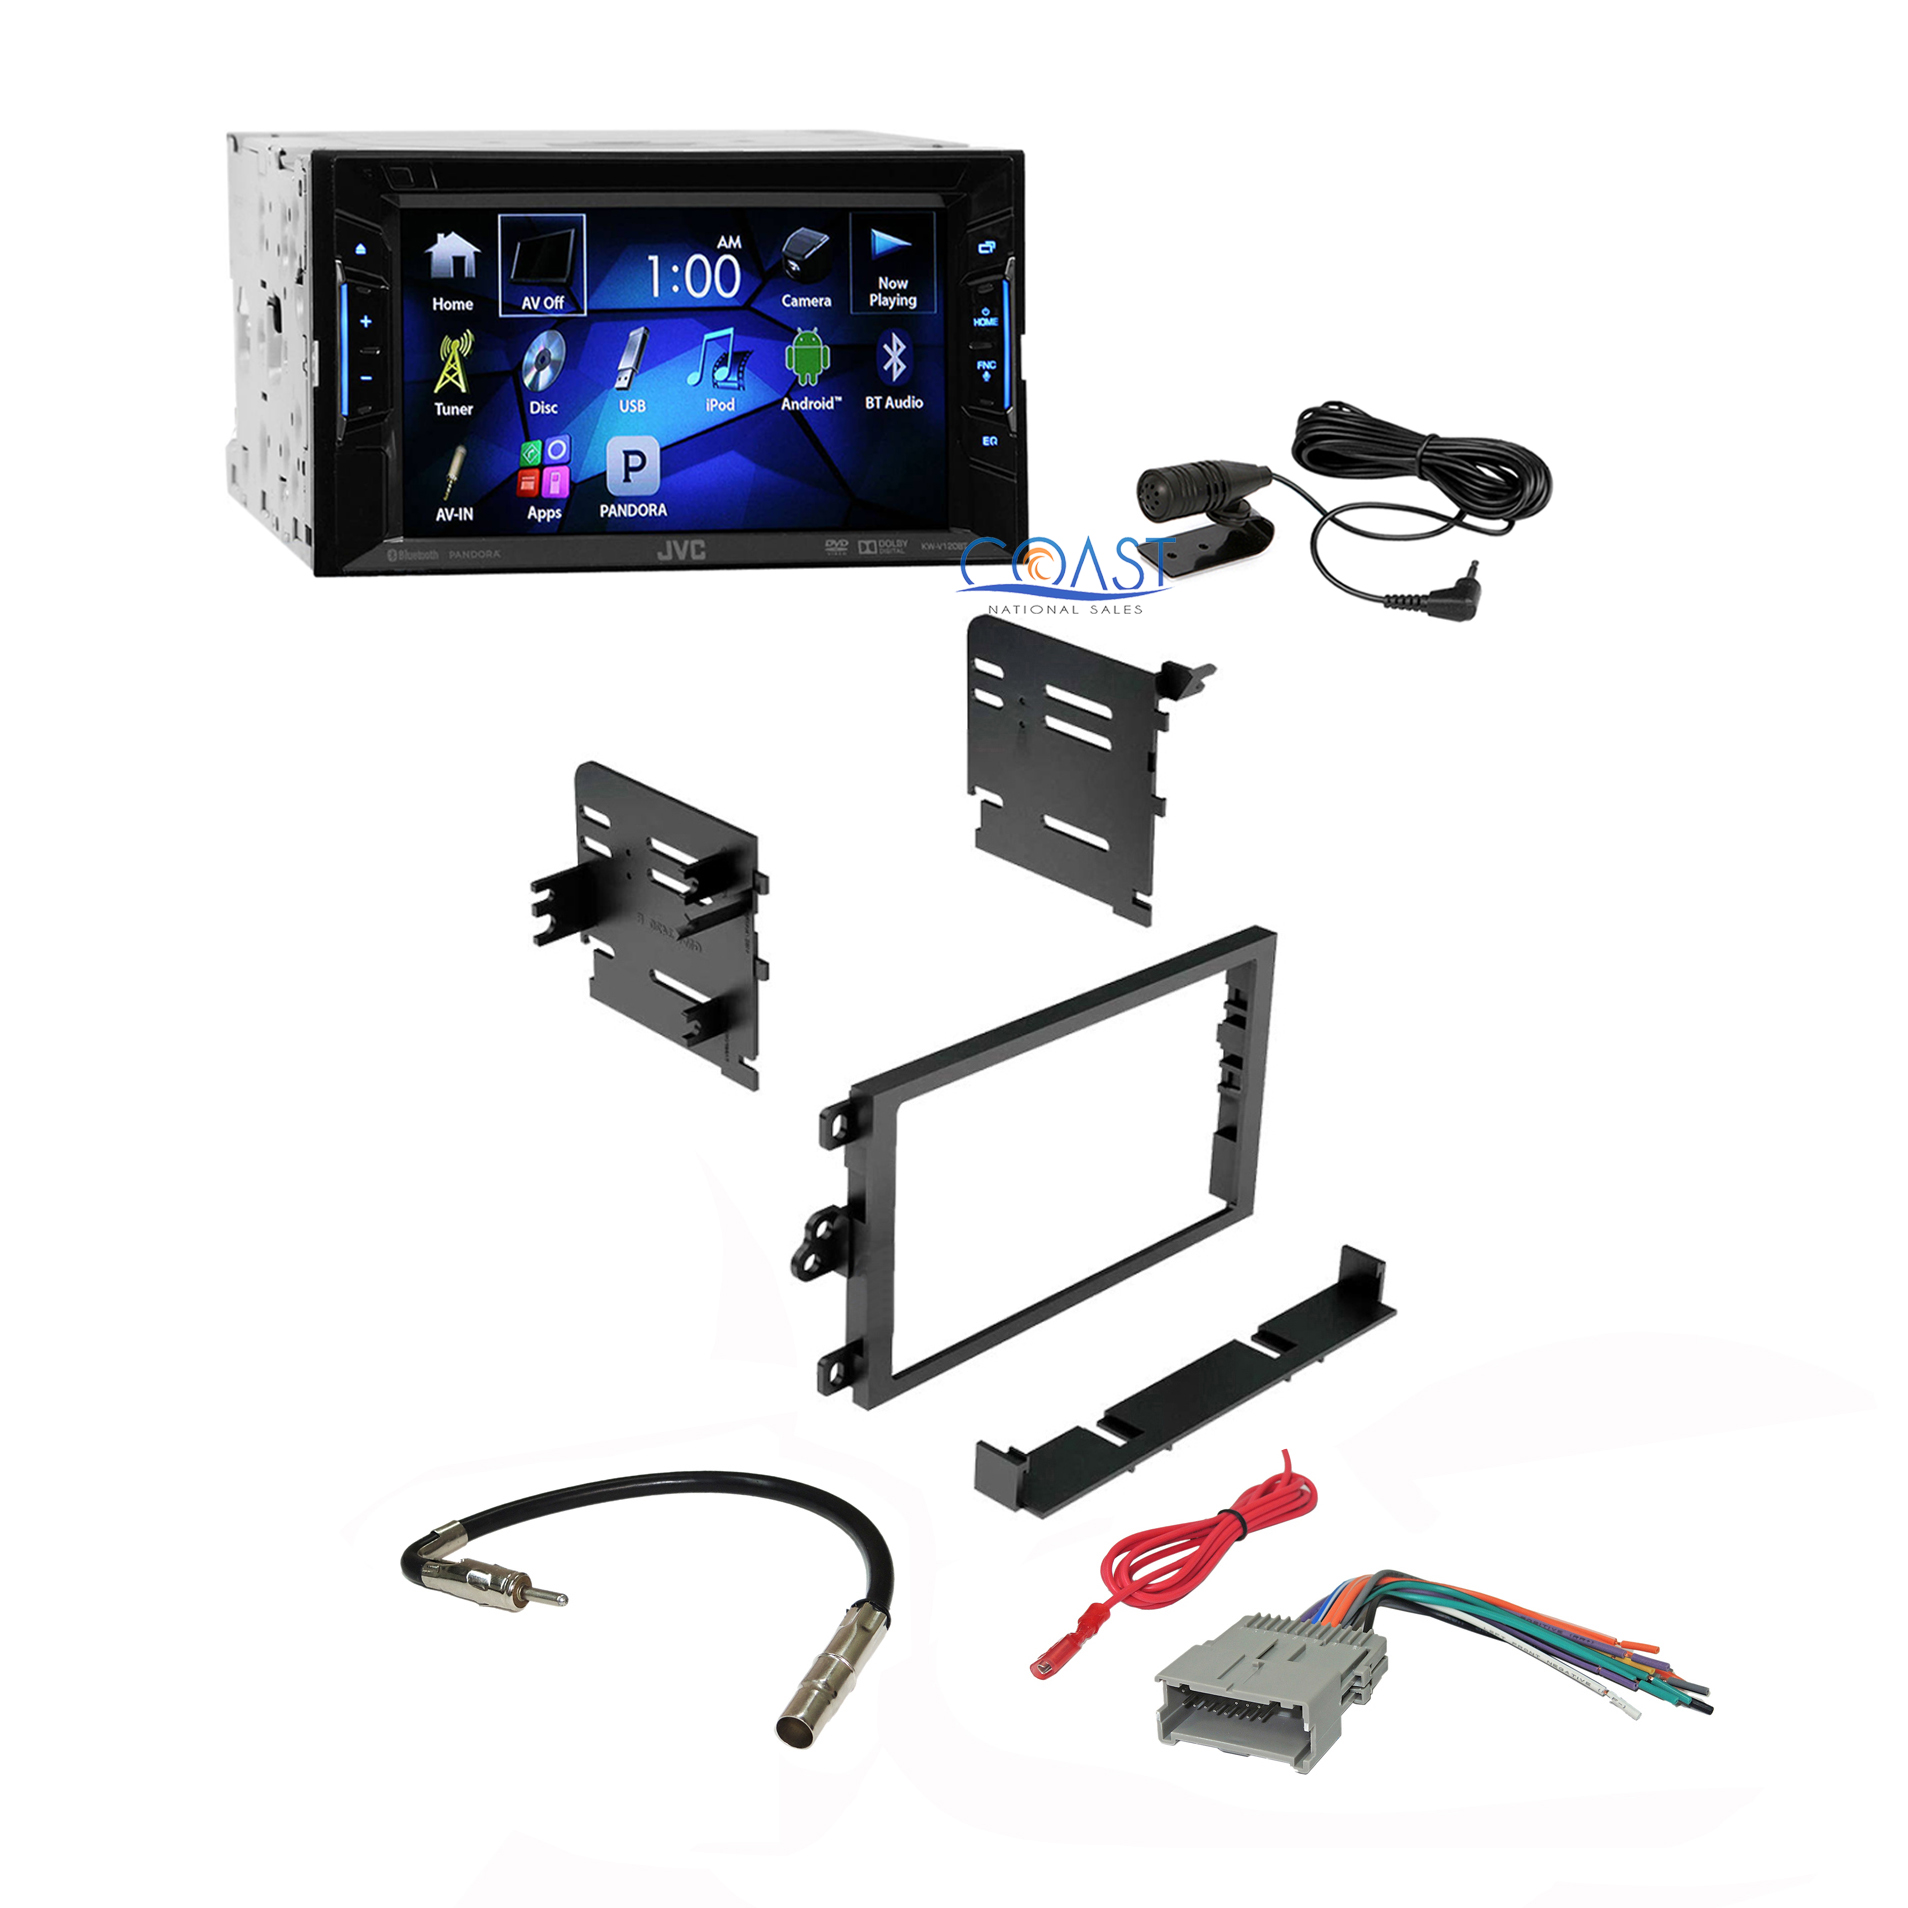 Ignition Switch Wiring Diagram On Vision Dvd Player Wiring Diagram